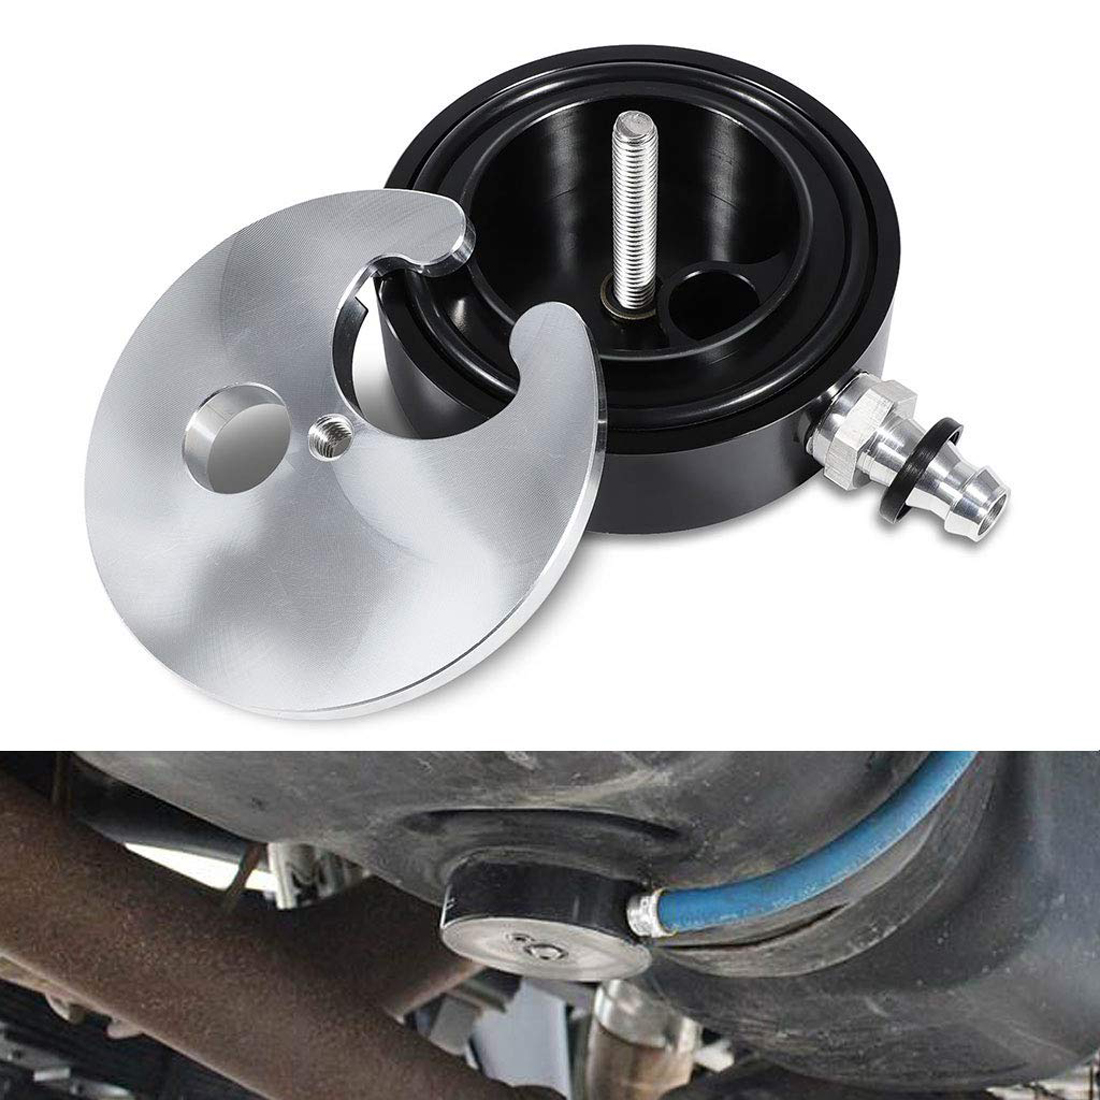 Full Force Diesel >> Full Force Diesel Fuel Tank Pick Up Auto Parts Accessories